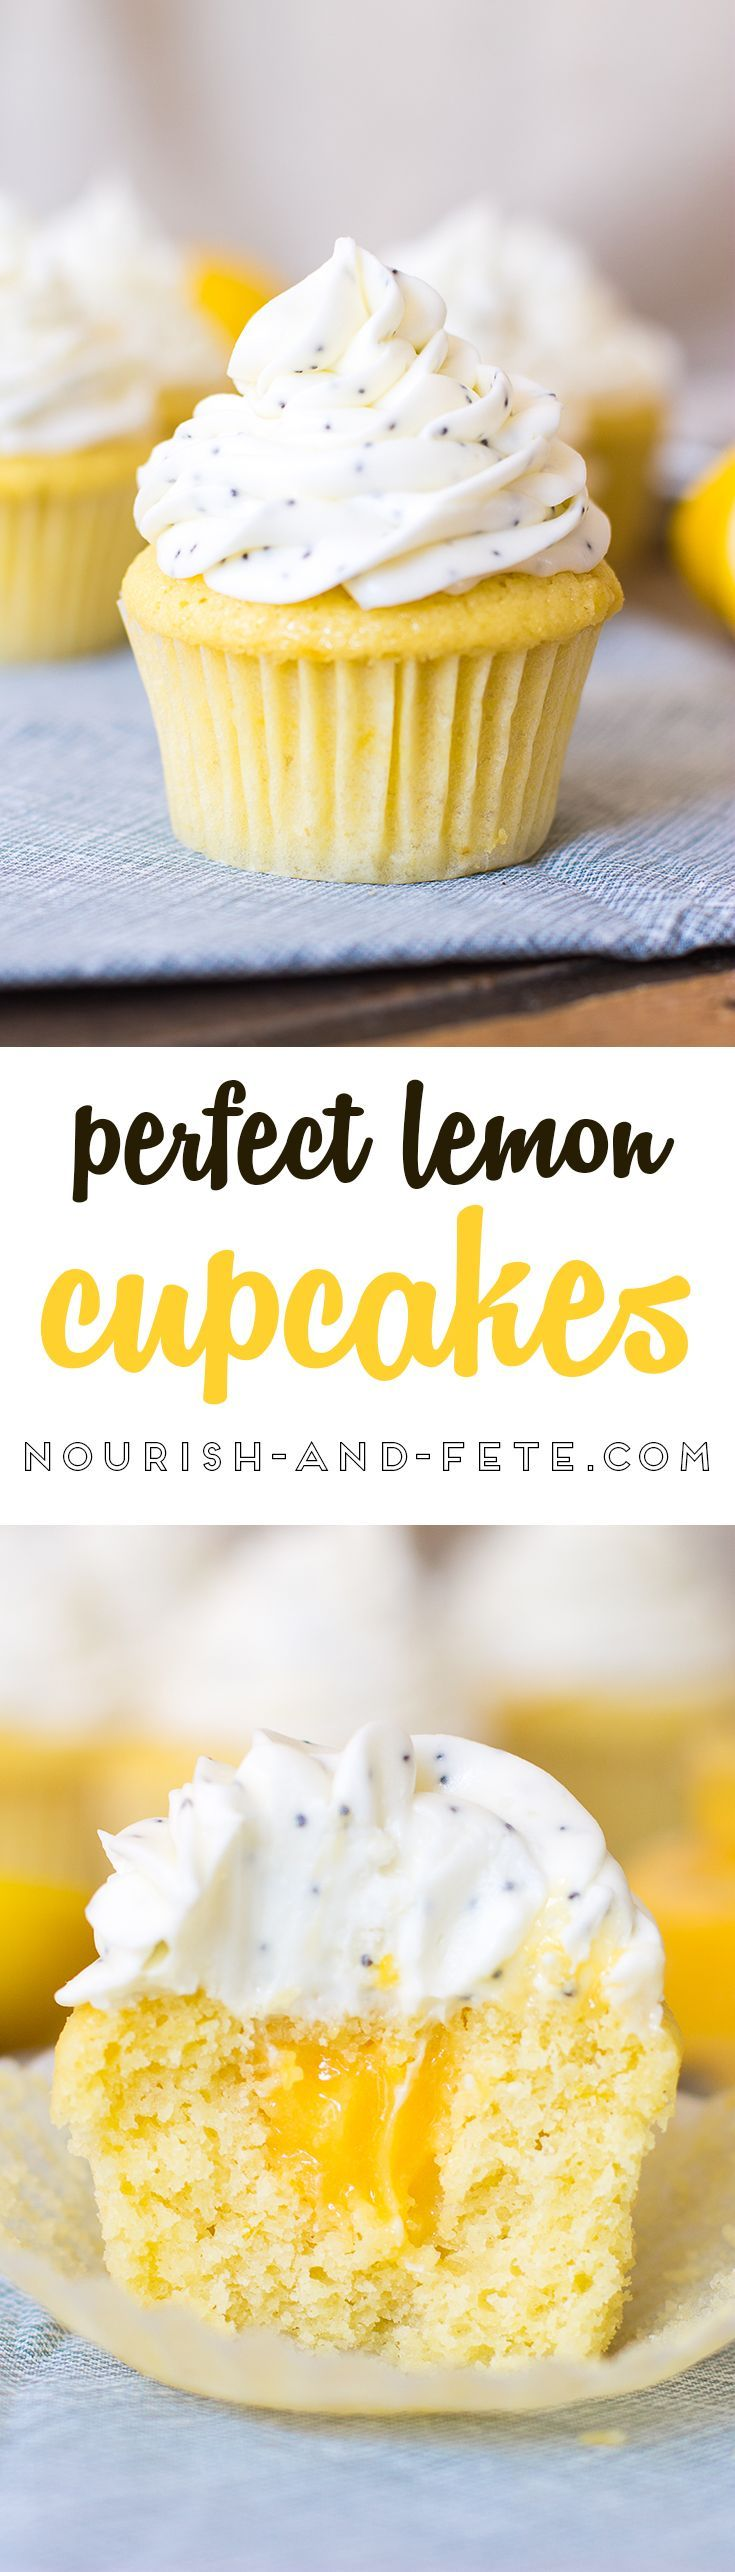 Cheerful lemon cupcakes filled with silky smooth lemon curd and finished off with a sweet layer of cream cheese poppy seed frosting - perfect for a sunny sweet treat! via @nourishandfete